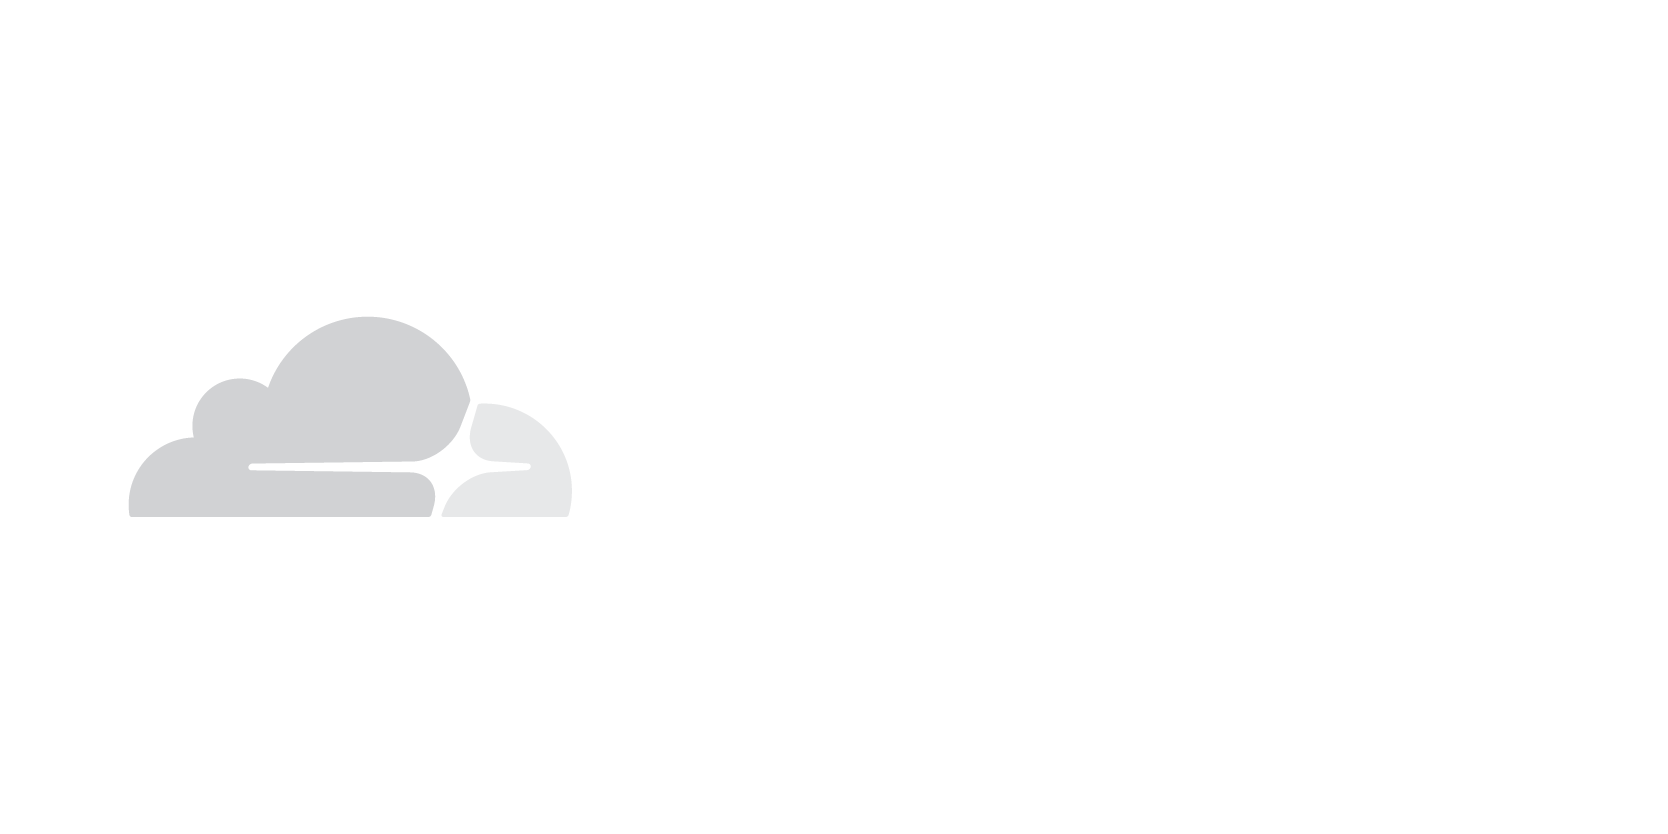 Cloudflare - Security7 Networks